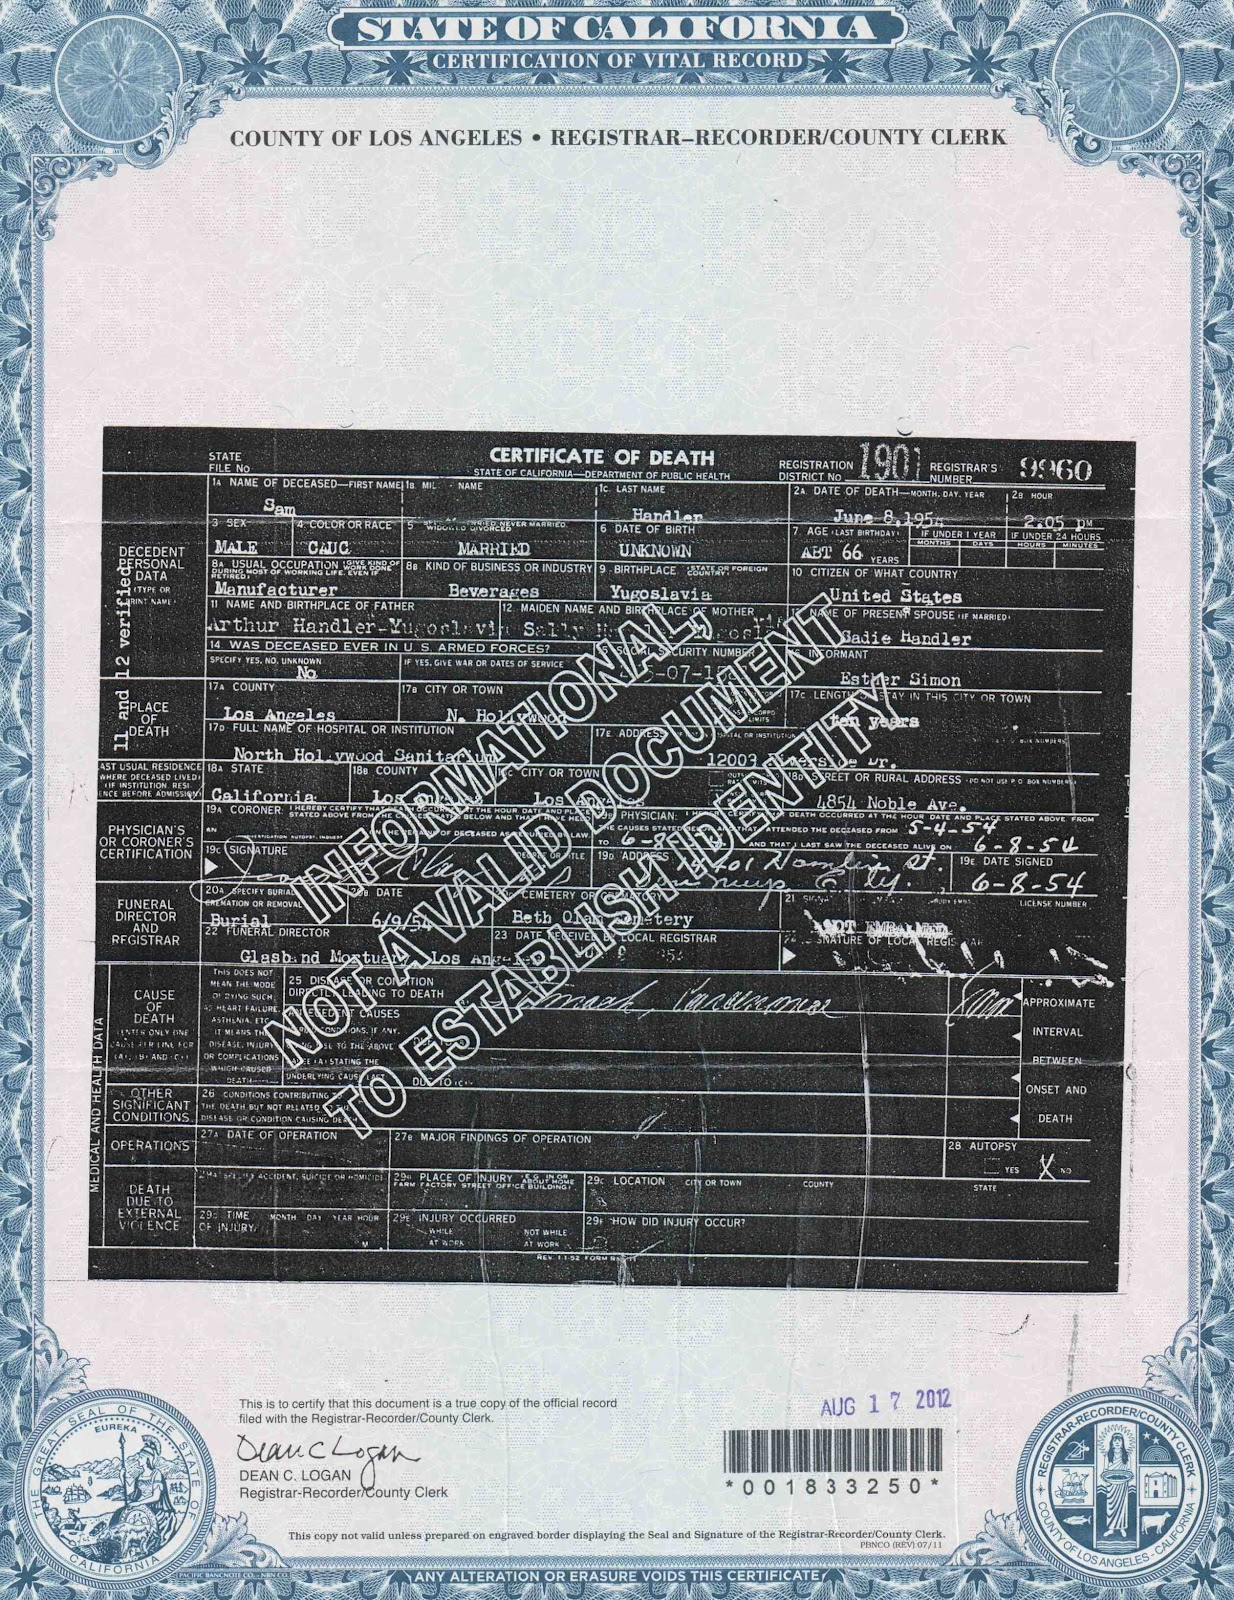 A jewish genealogy journey amanuensis monday sam handlers it was very easy to download a form at the website for the los angeles county registrar recordercounty clerk and send away for his death certificate xflitez Image collections